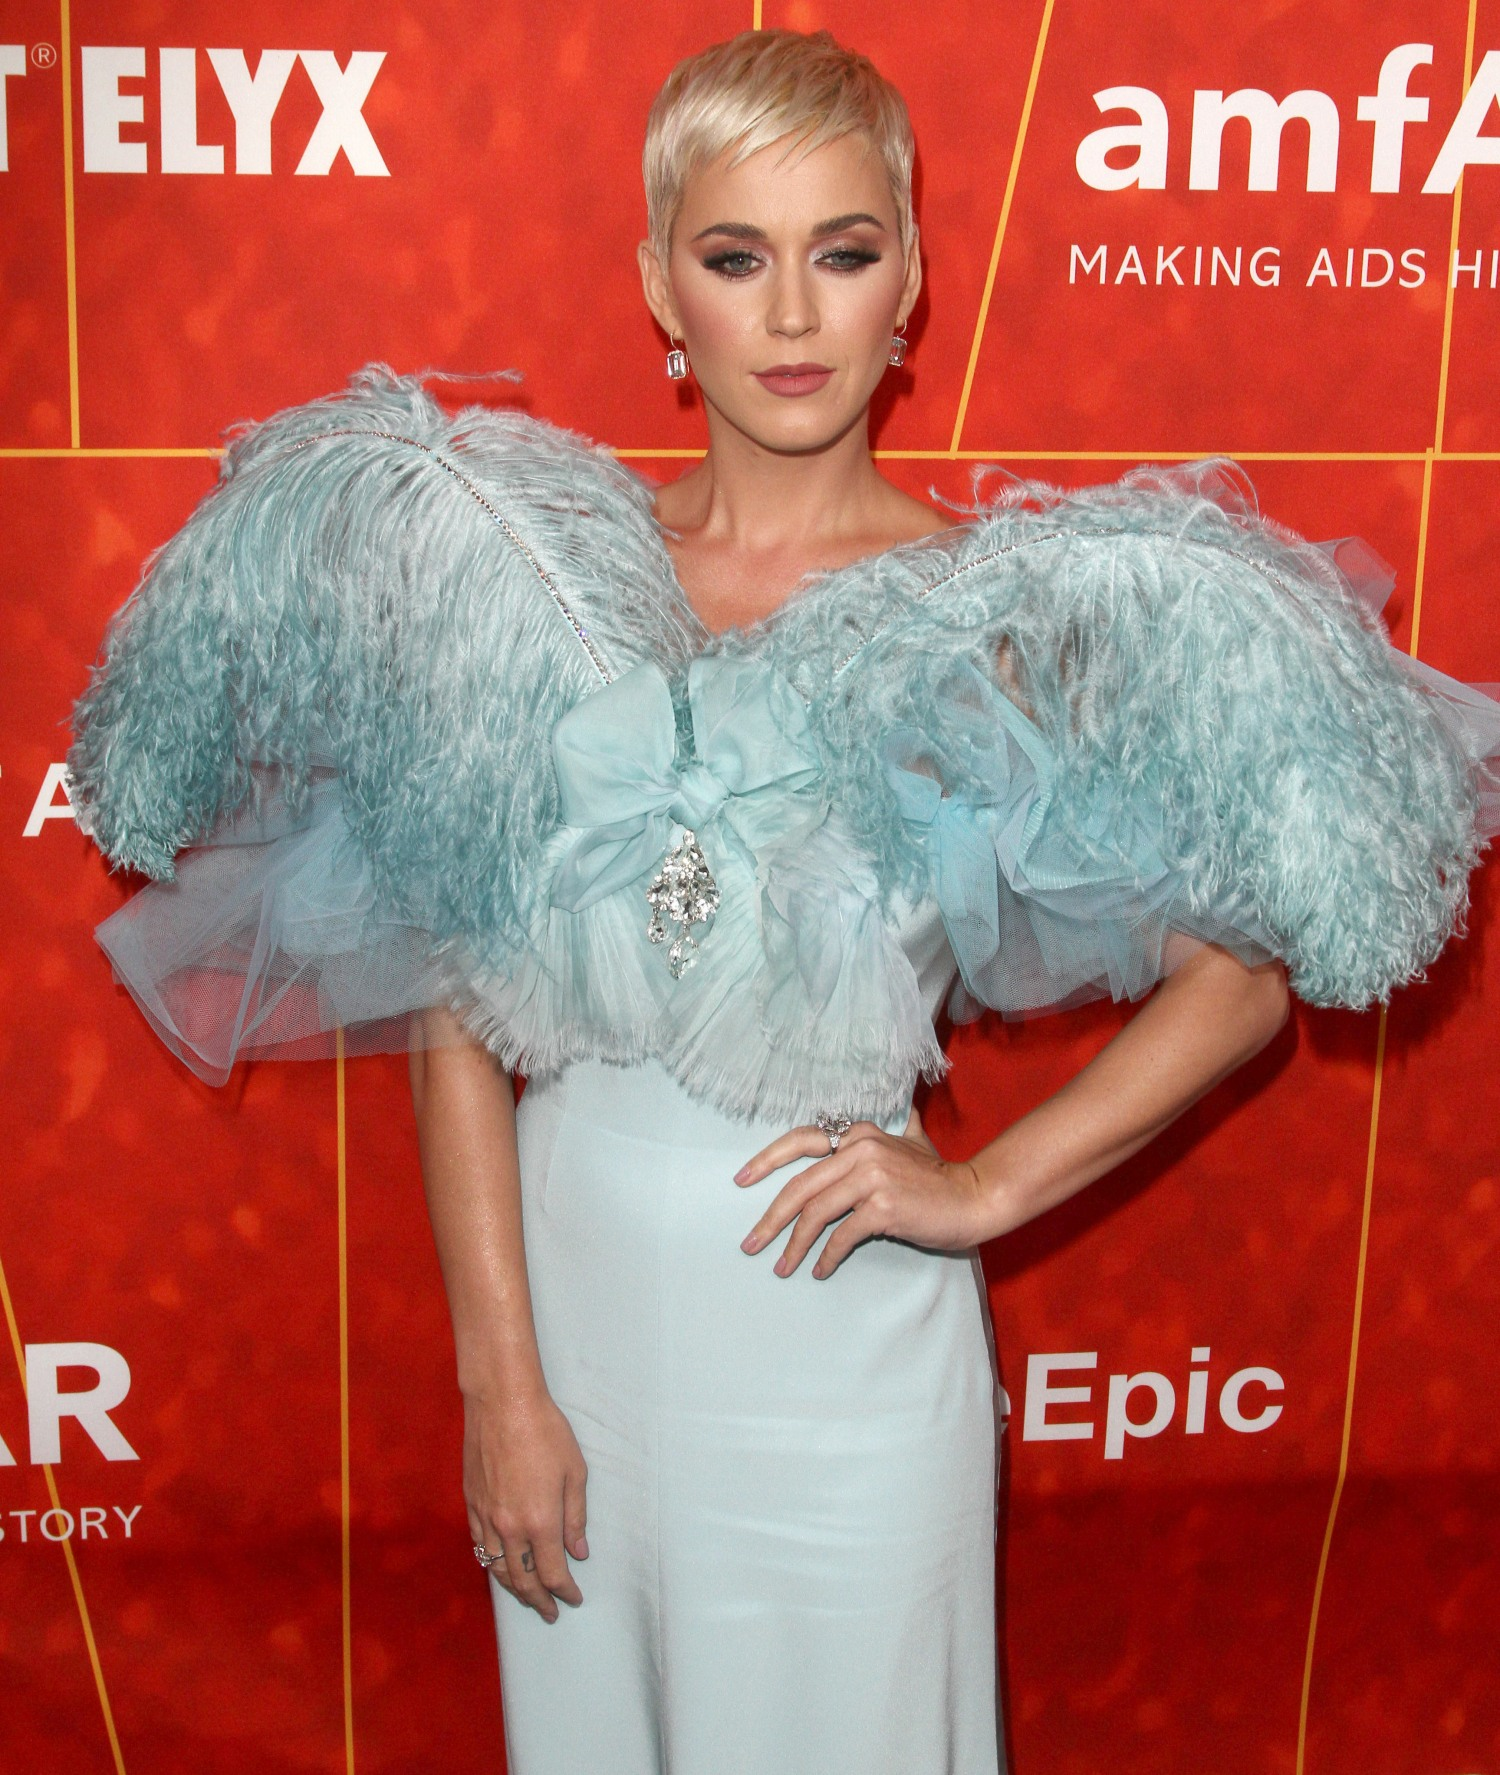 Katy Perry attends The the amFAR Gala in Los Angeles